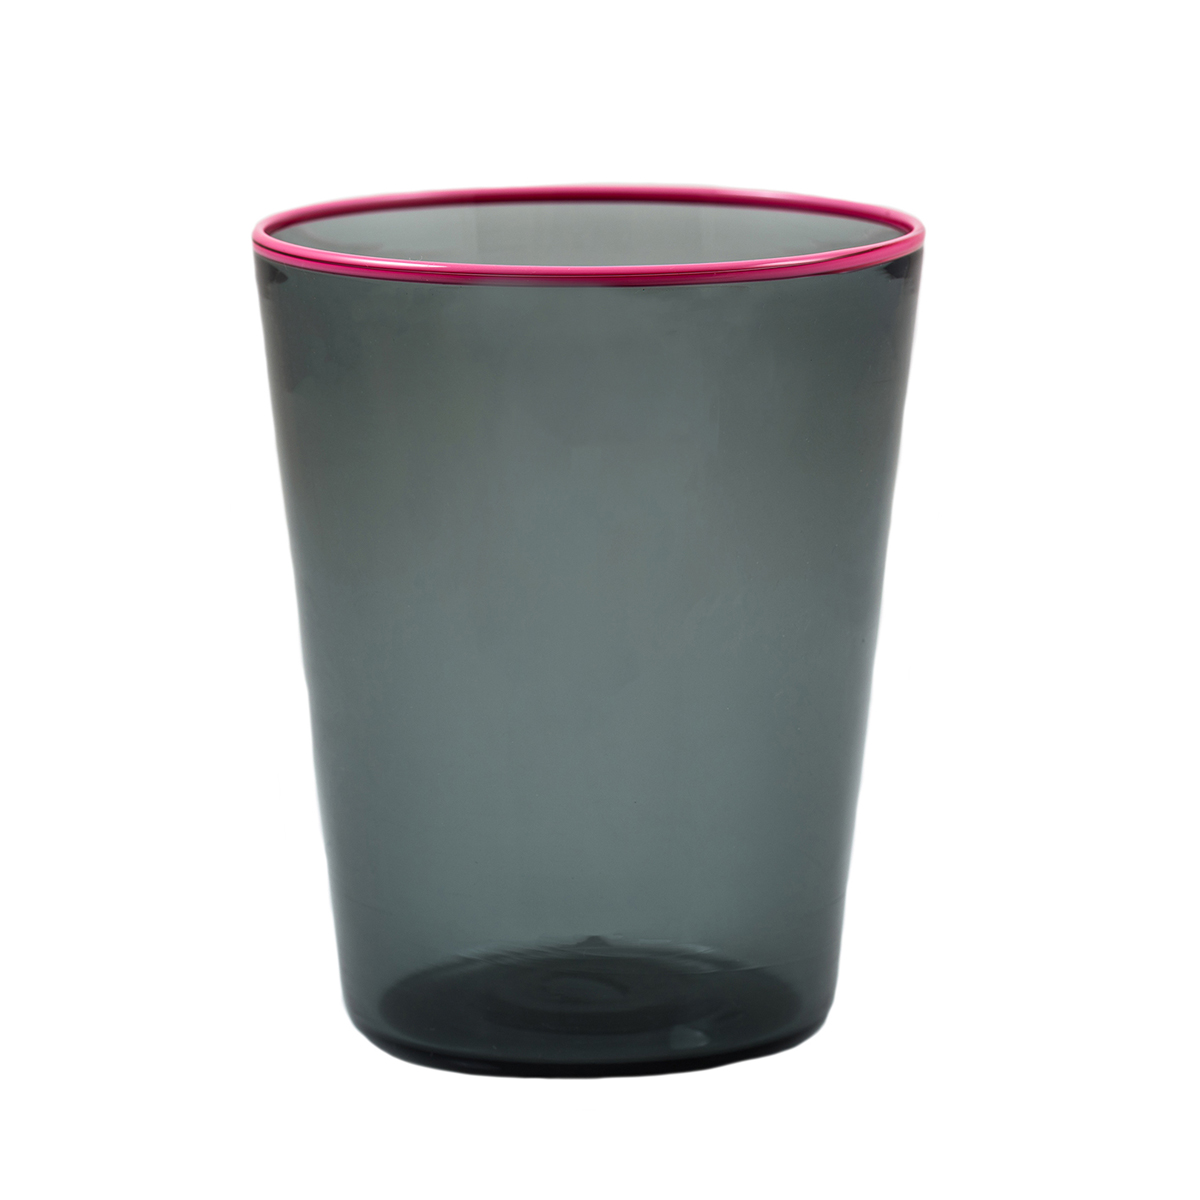 roi_water_murano_glass_pink_rim_luxury_venice